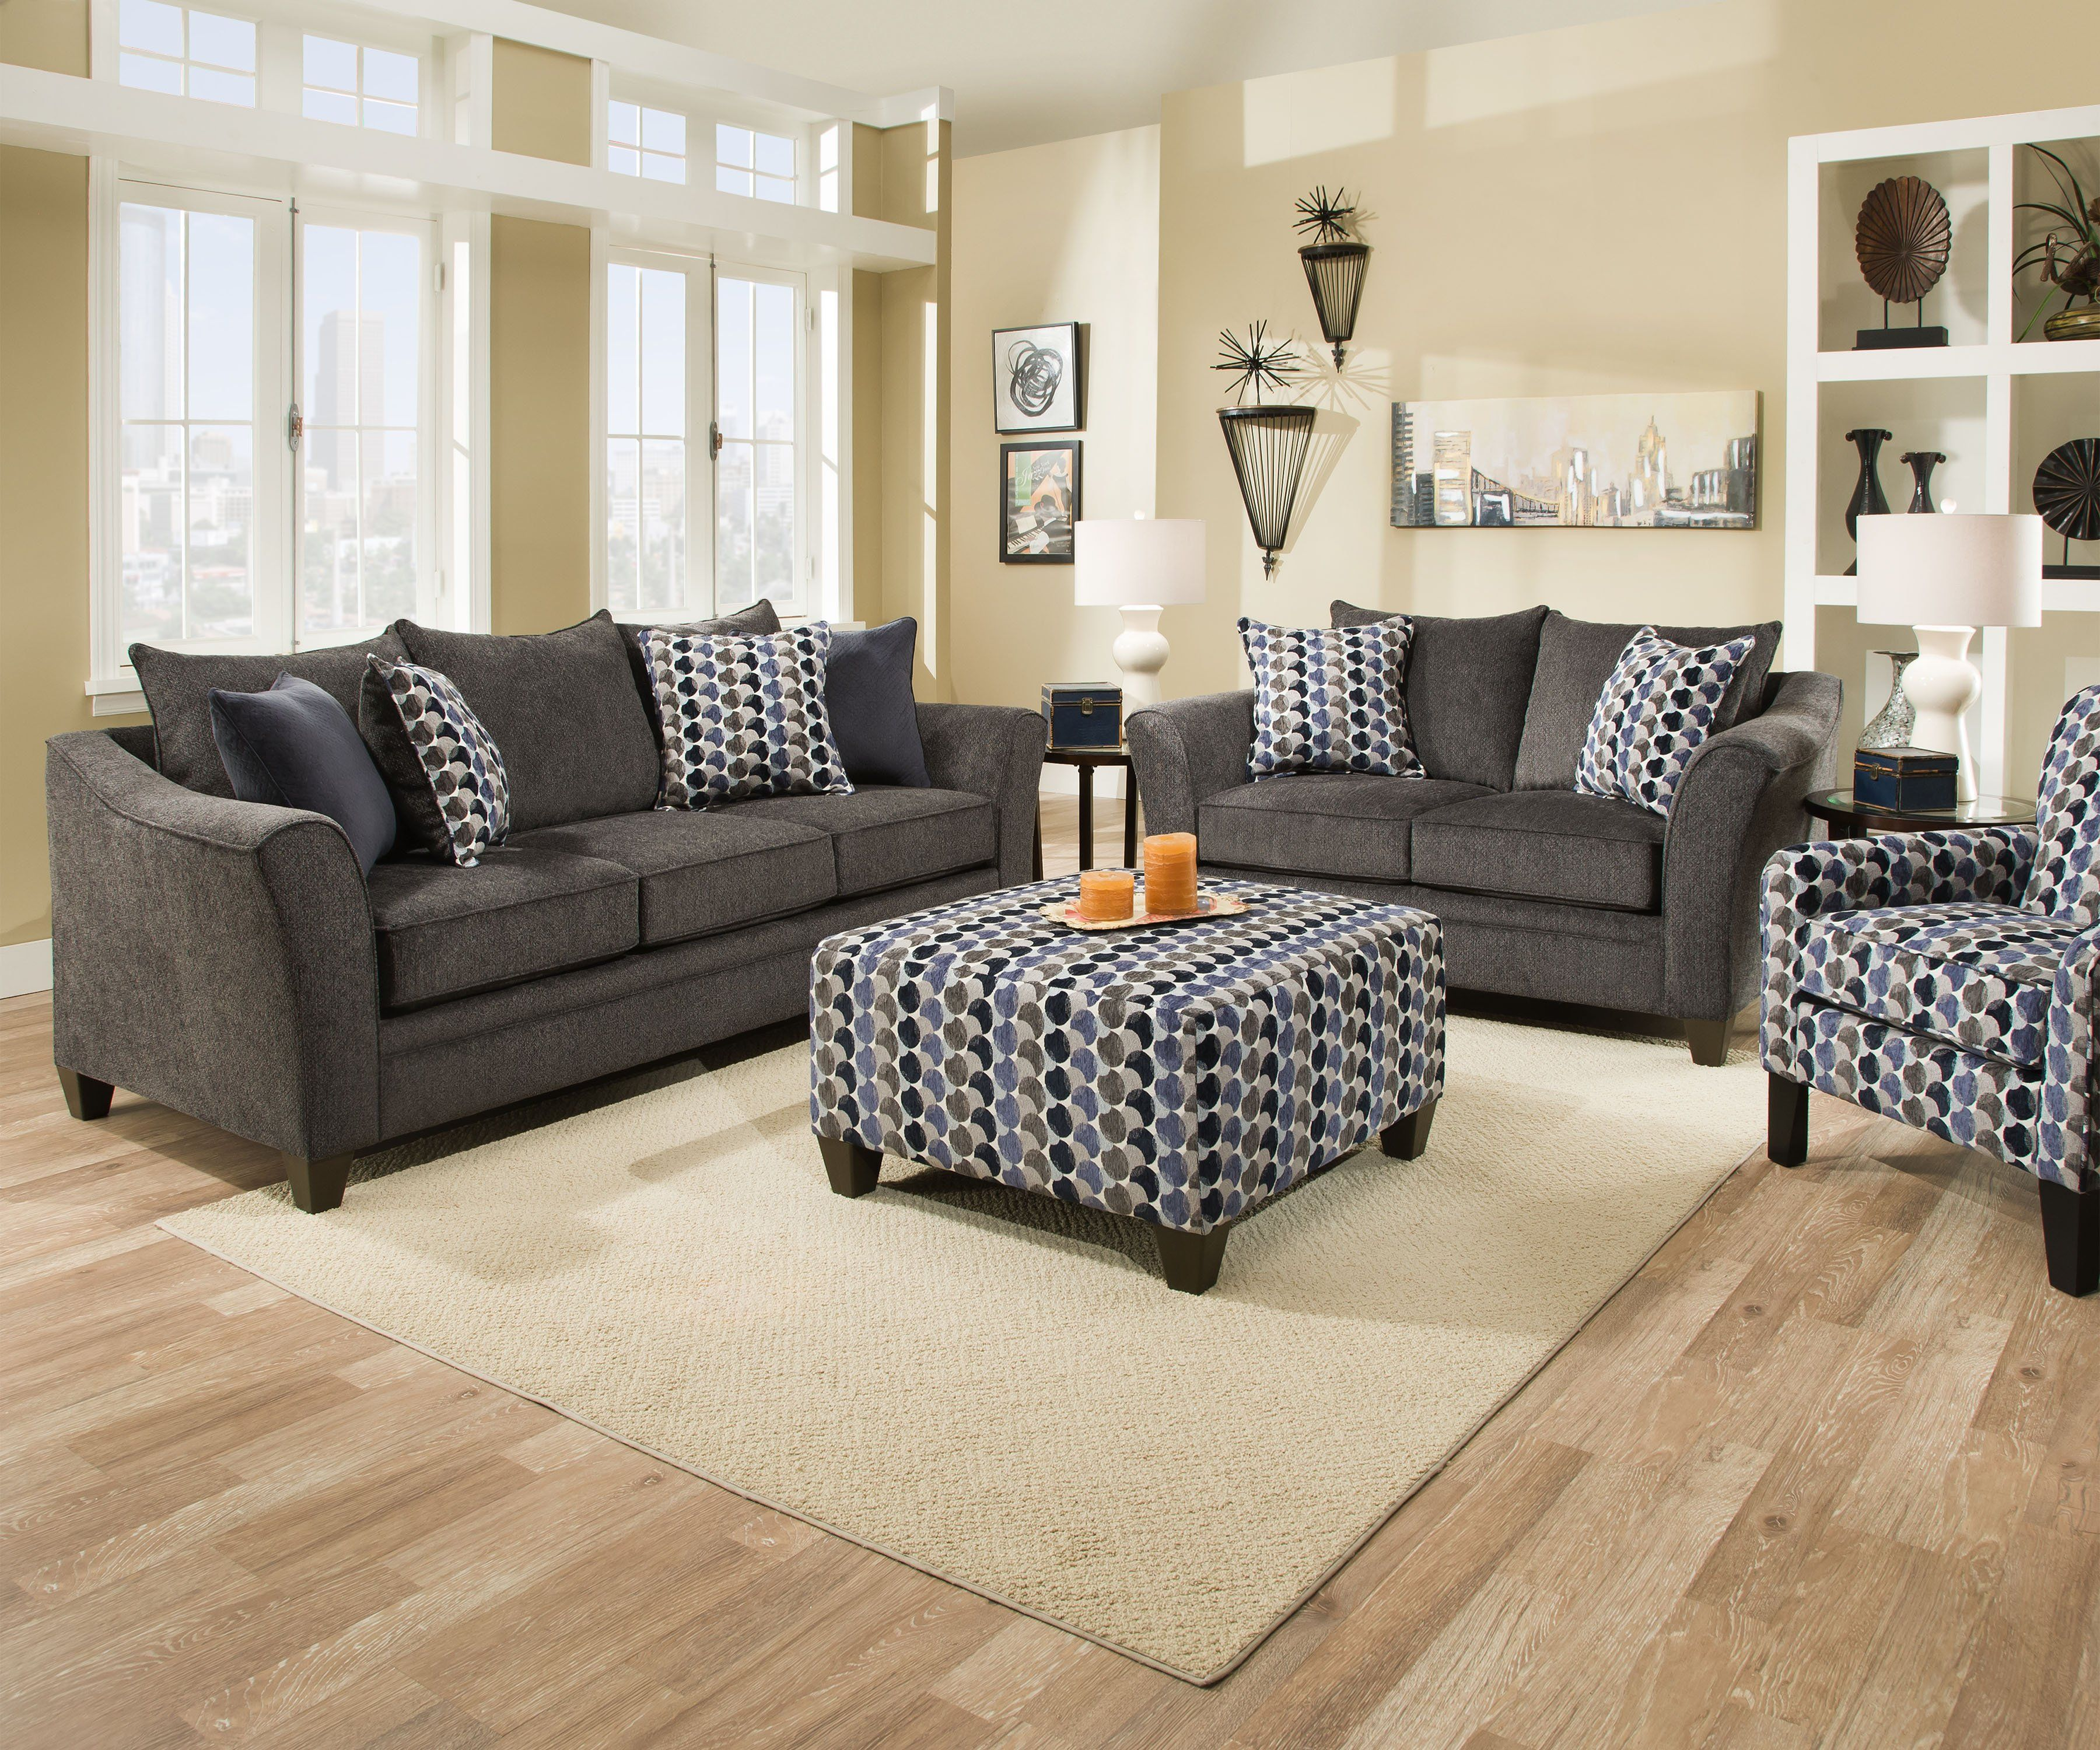 Albany Slate Sofa And Loveseat Sofa And Loveseat Set Living Room Sets Accent Chairs For Living Room